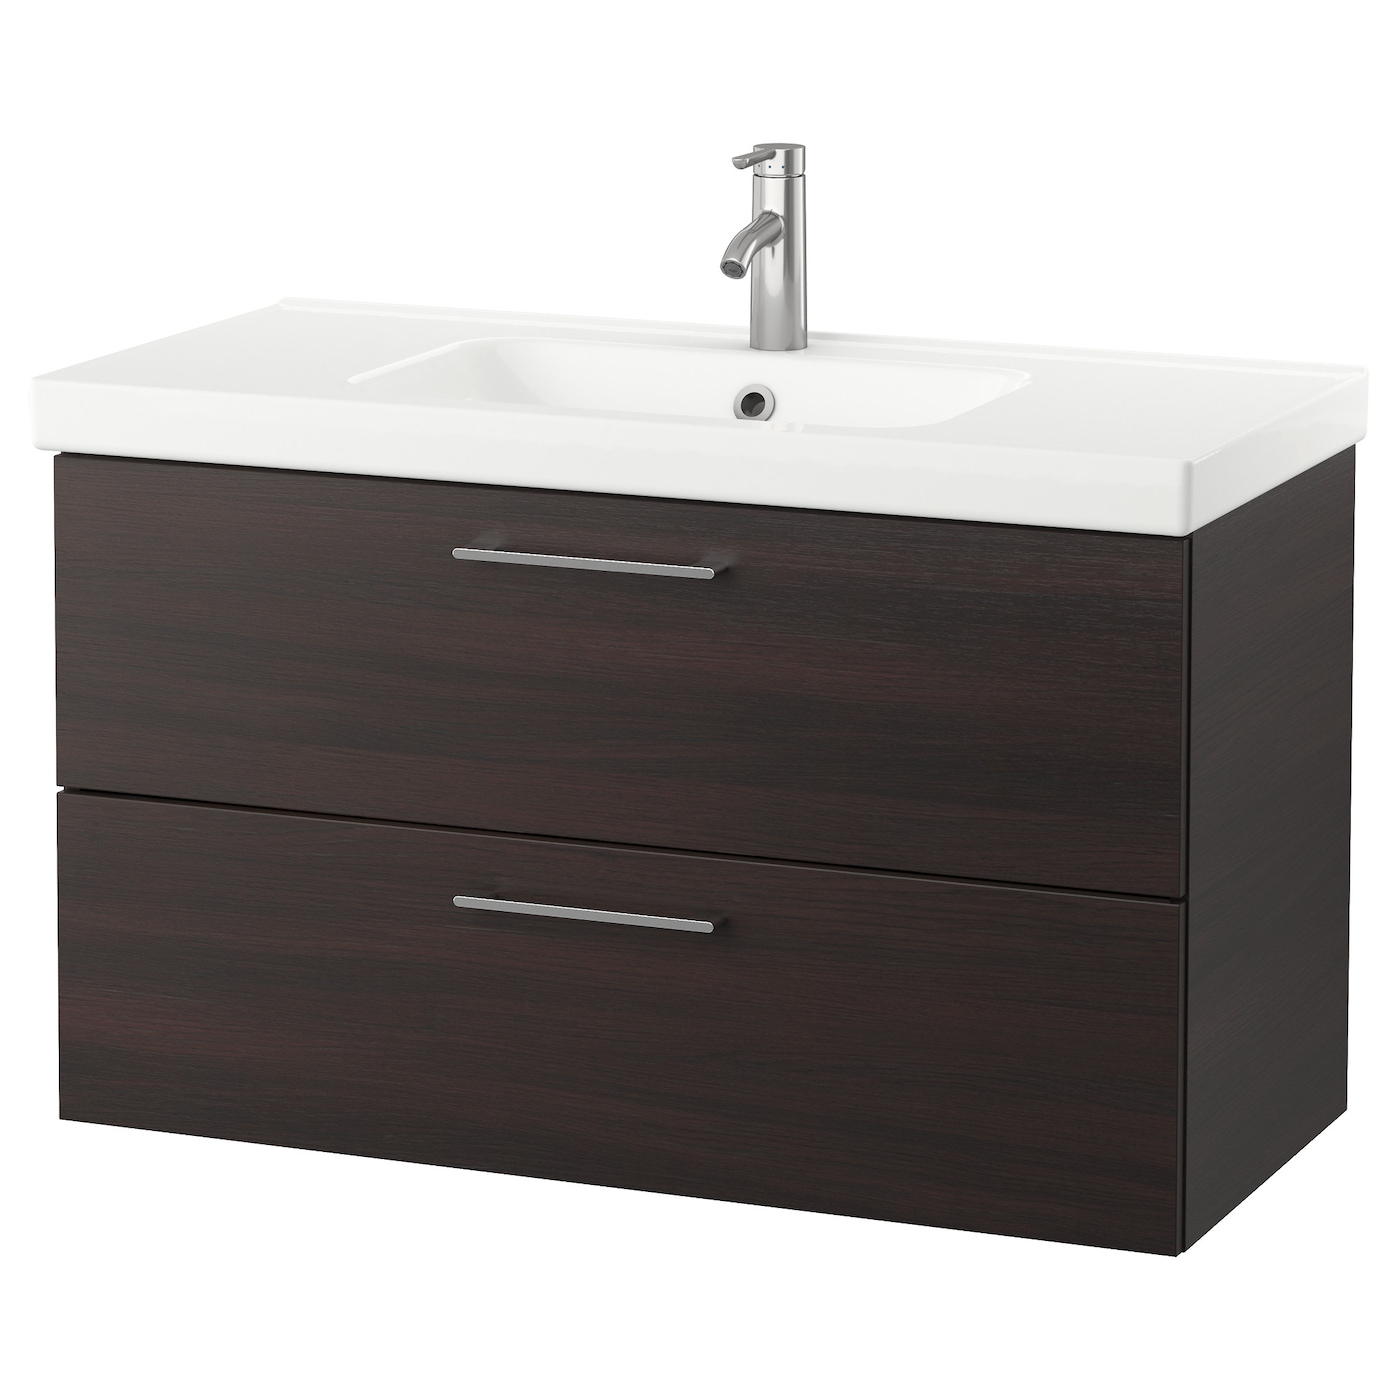 black bathroom sink cabinet bathroom vanity units ikea ireland dublin 12327